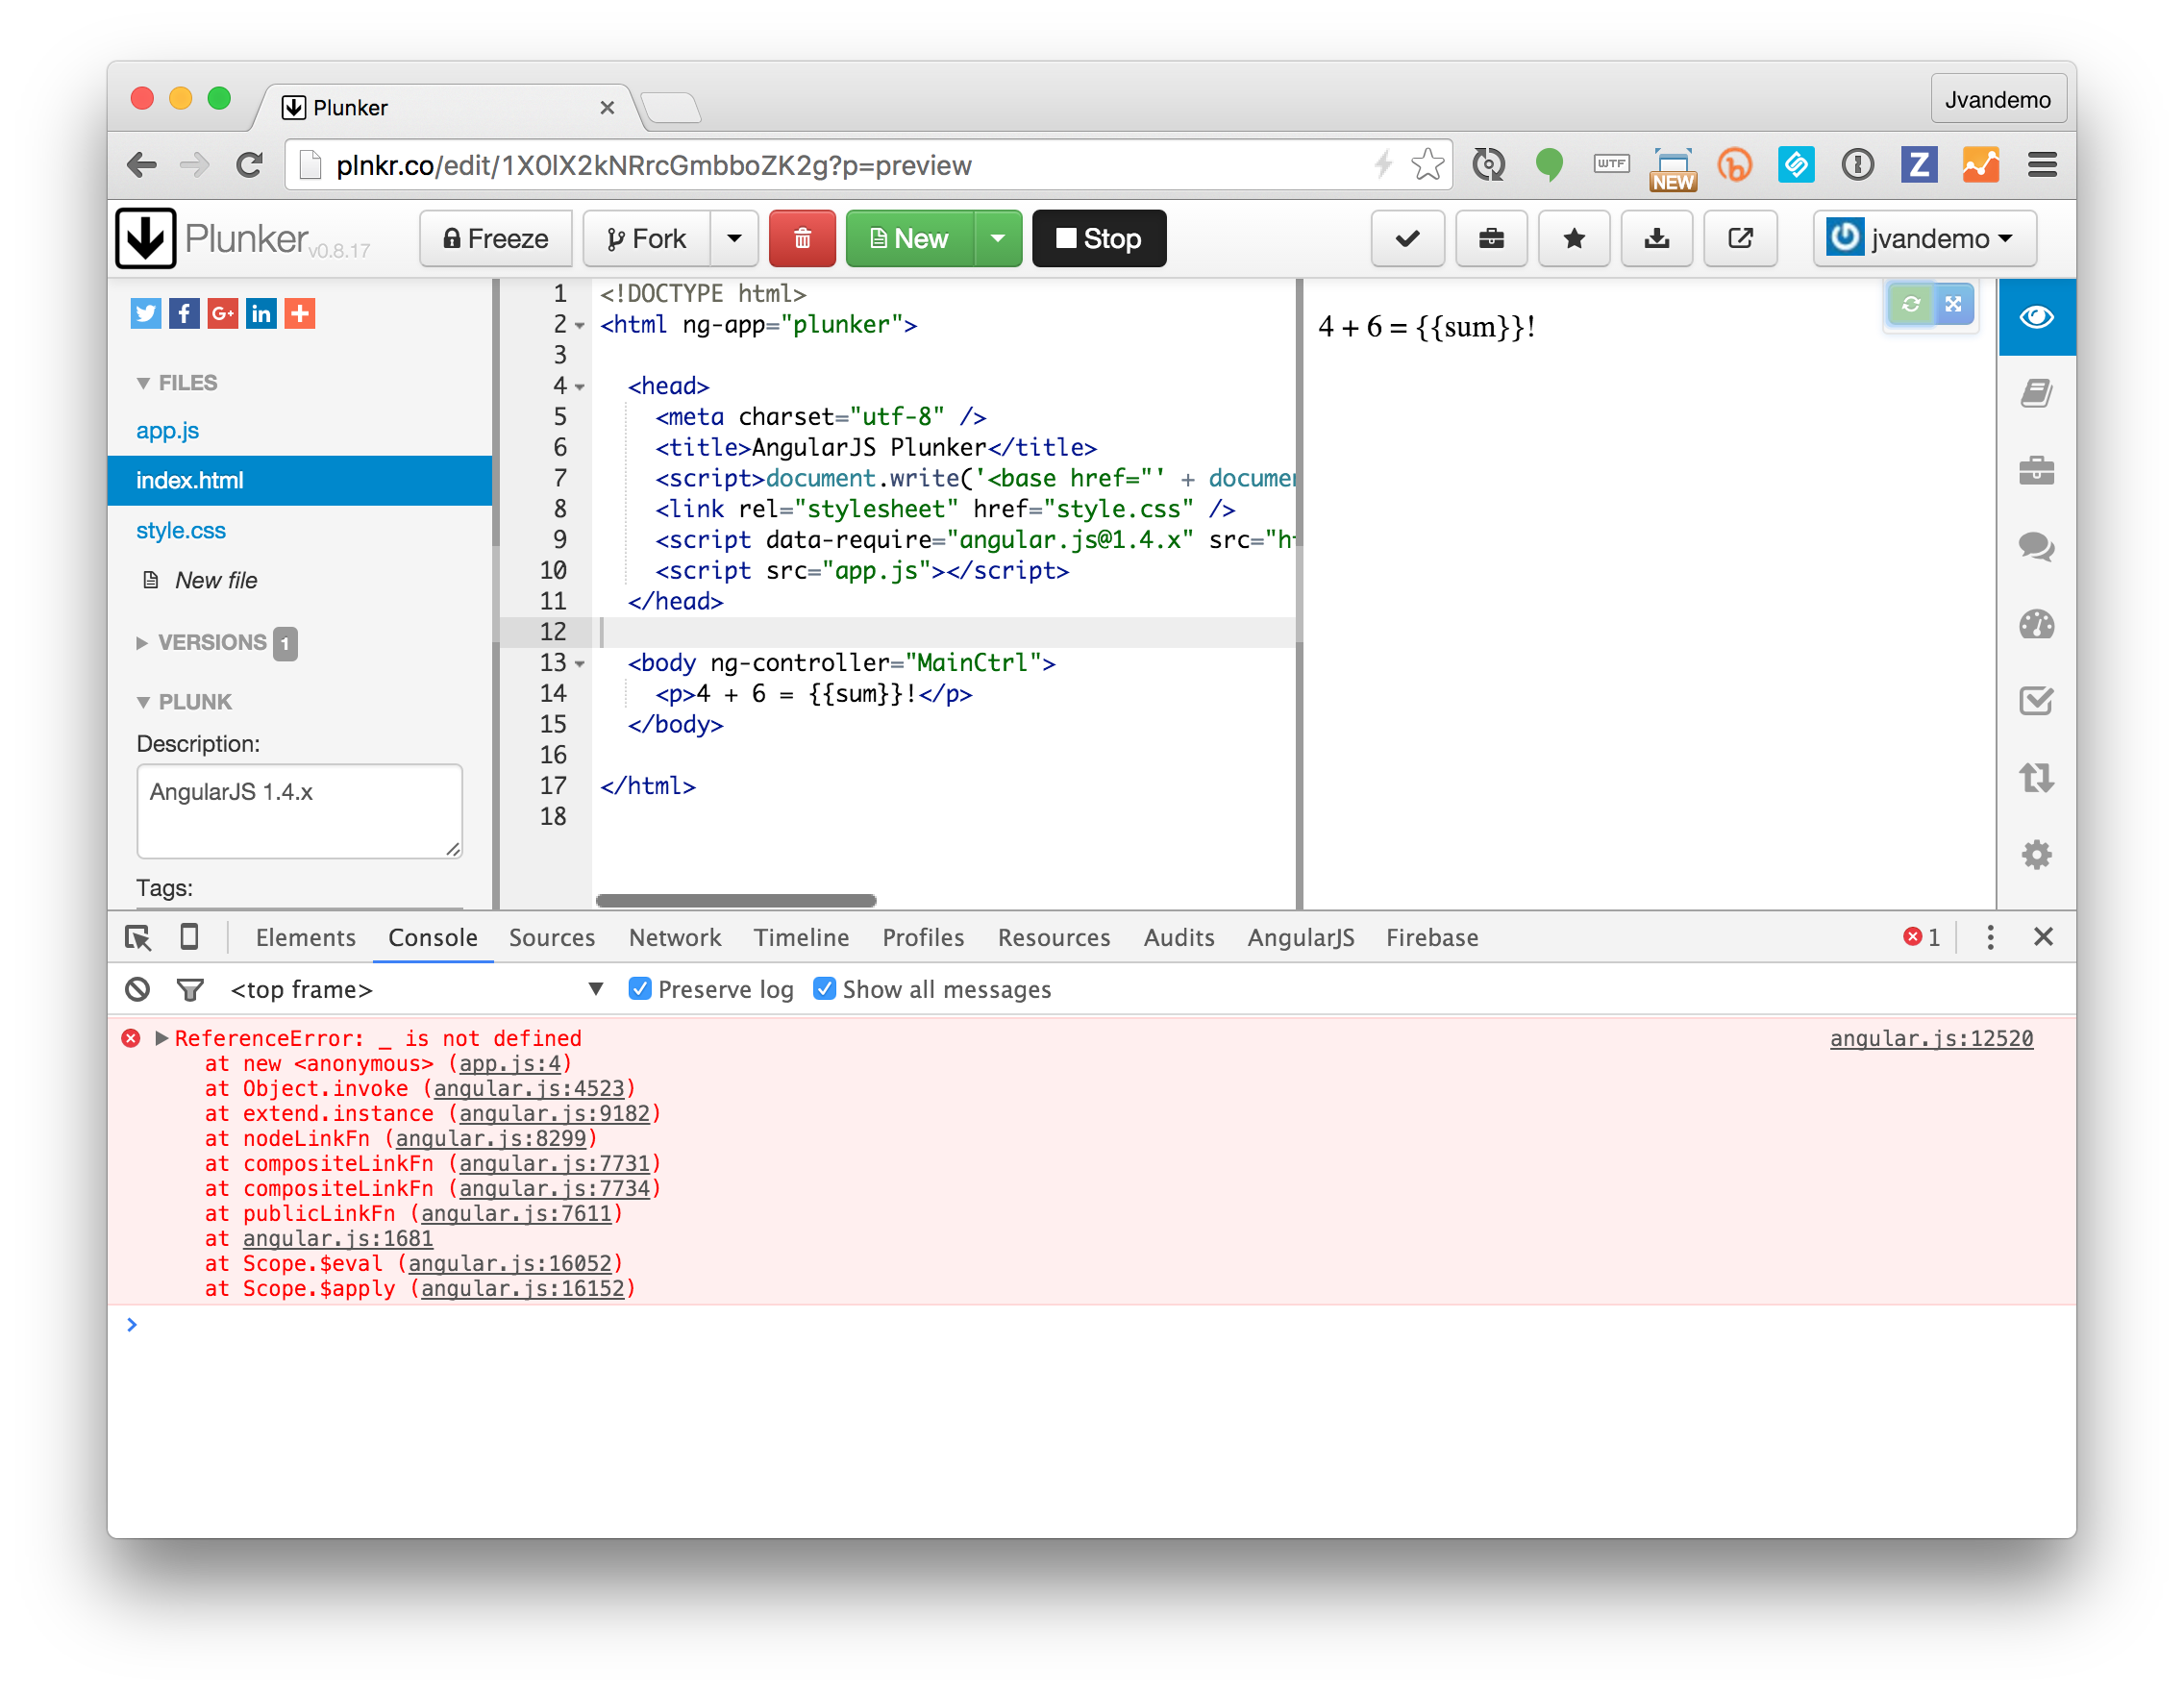 How to properly integrate non-AngularJS libraries in your AngularJS application